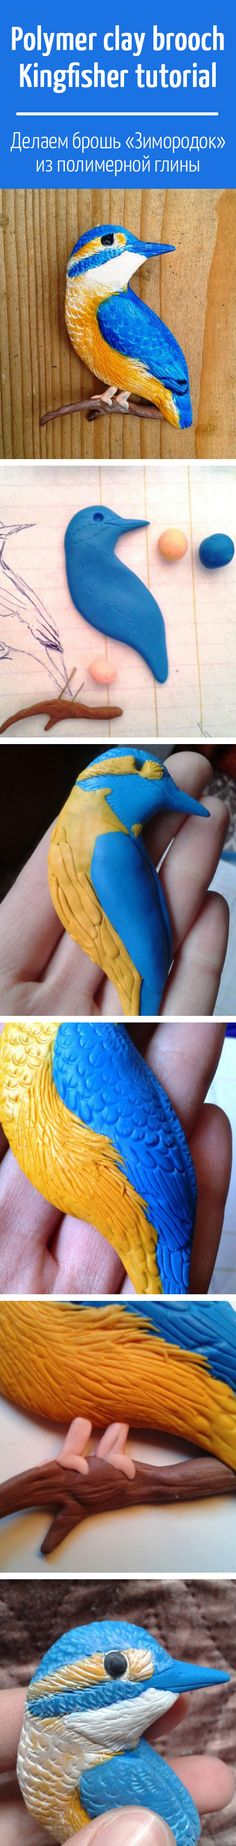 Polymer clay brooch Kingfisher bird tutorial. Click on image to see step-by-step tutorial